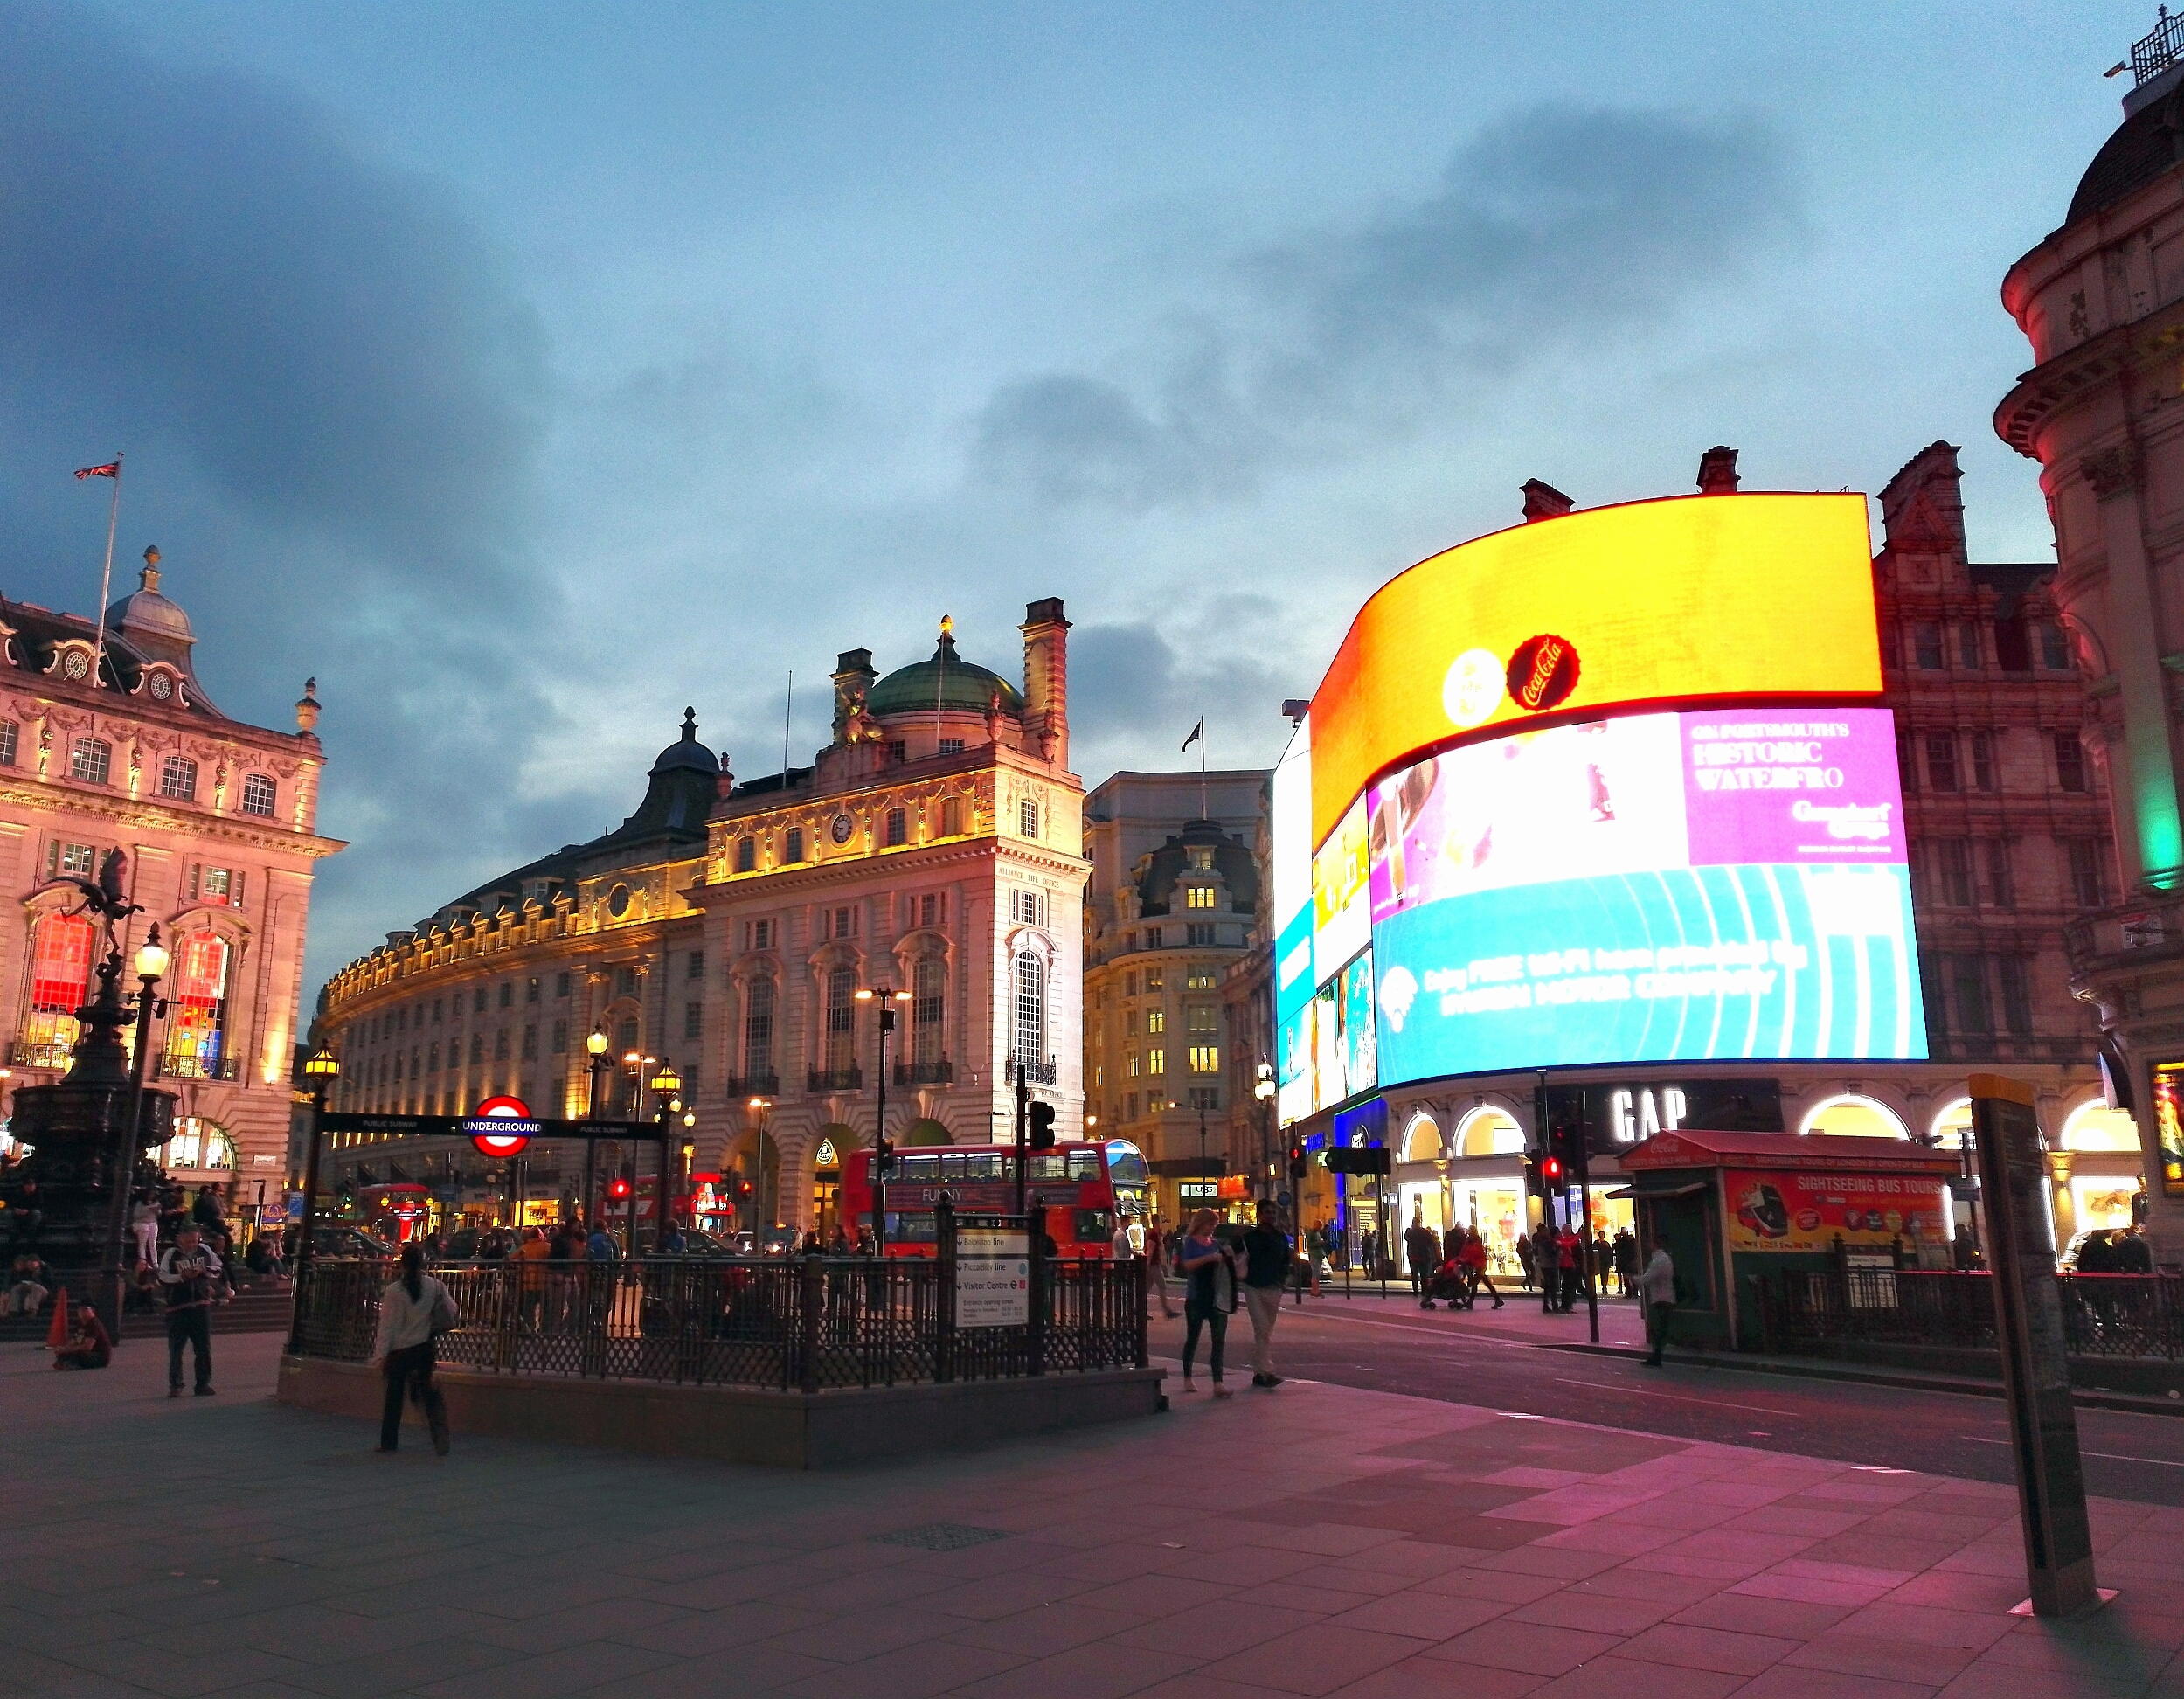 lontoo piccadilly circus